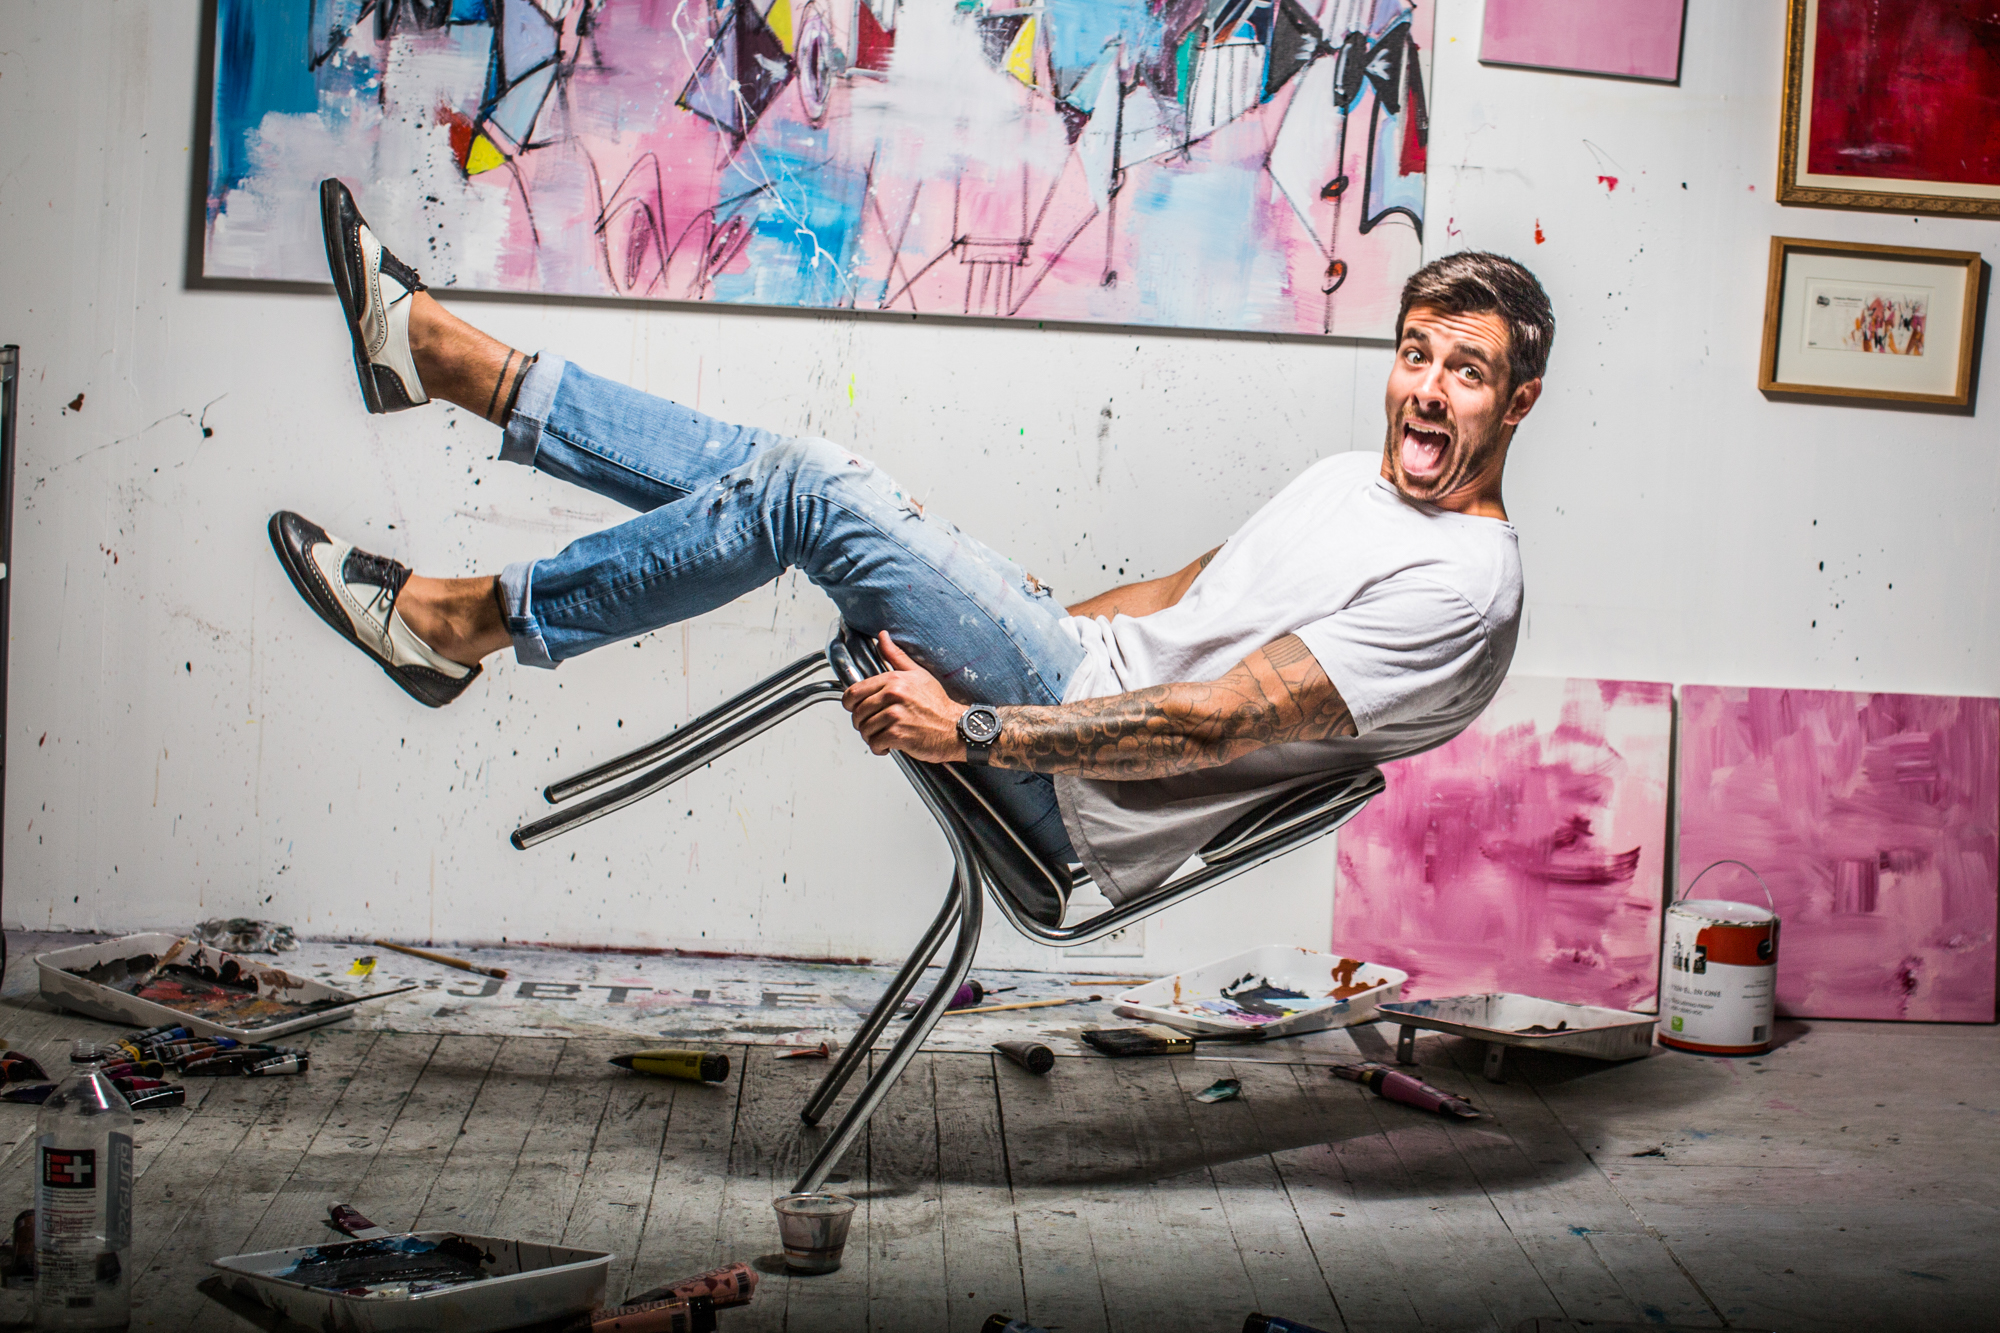 Artist Jet Levant falling down off of his chair.